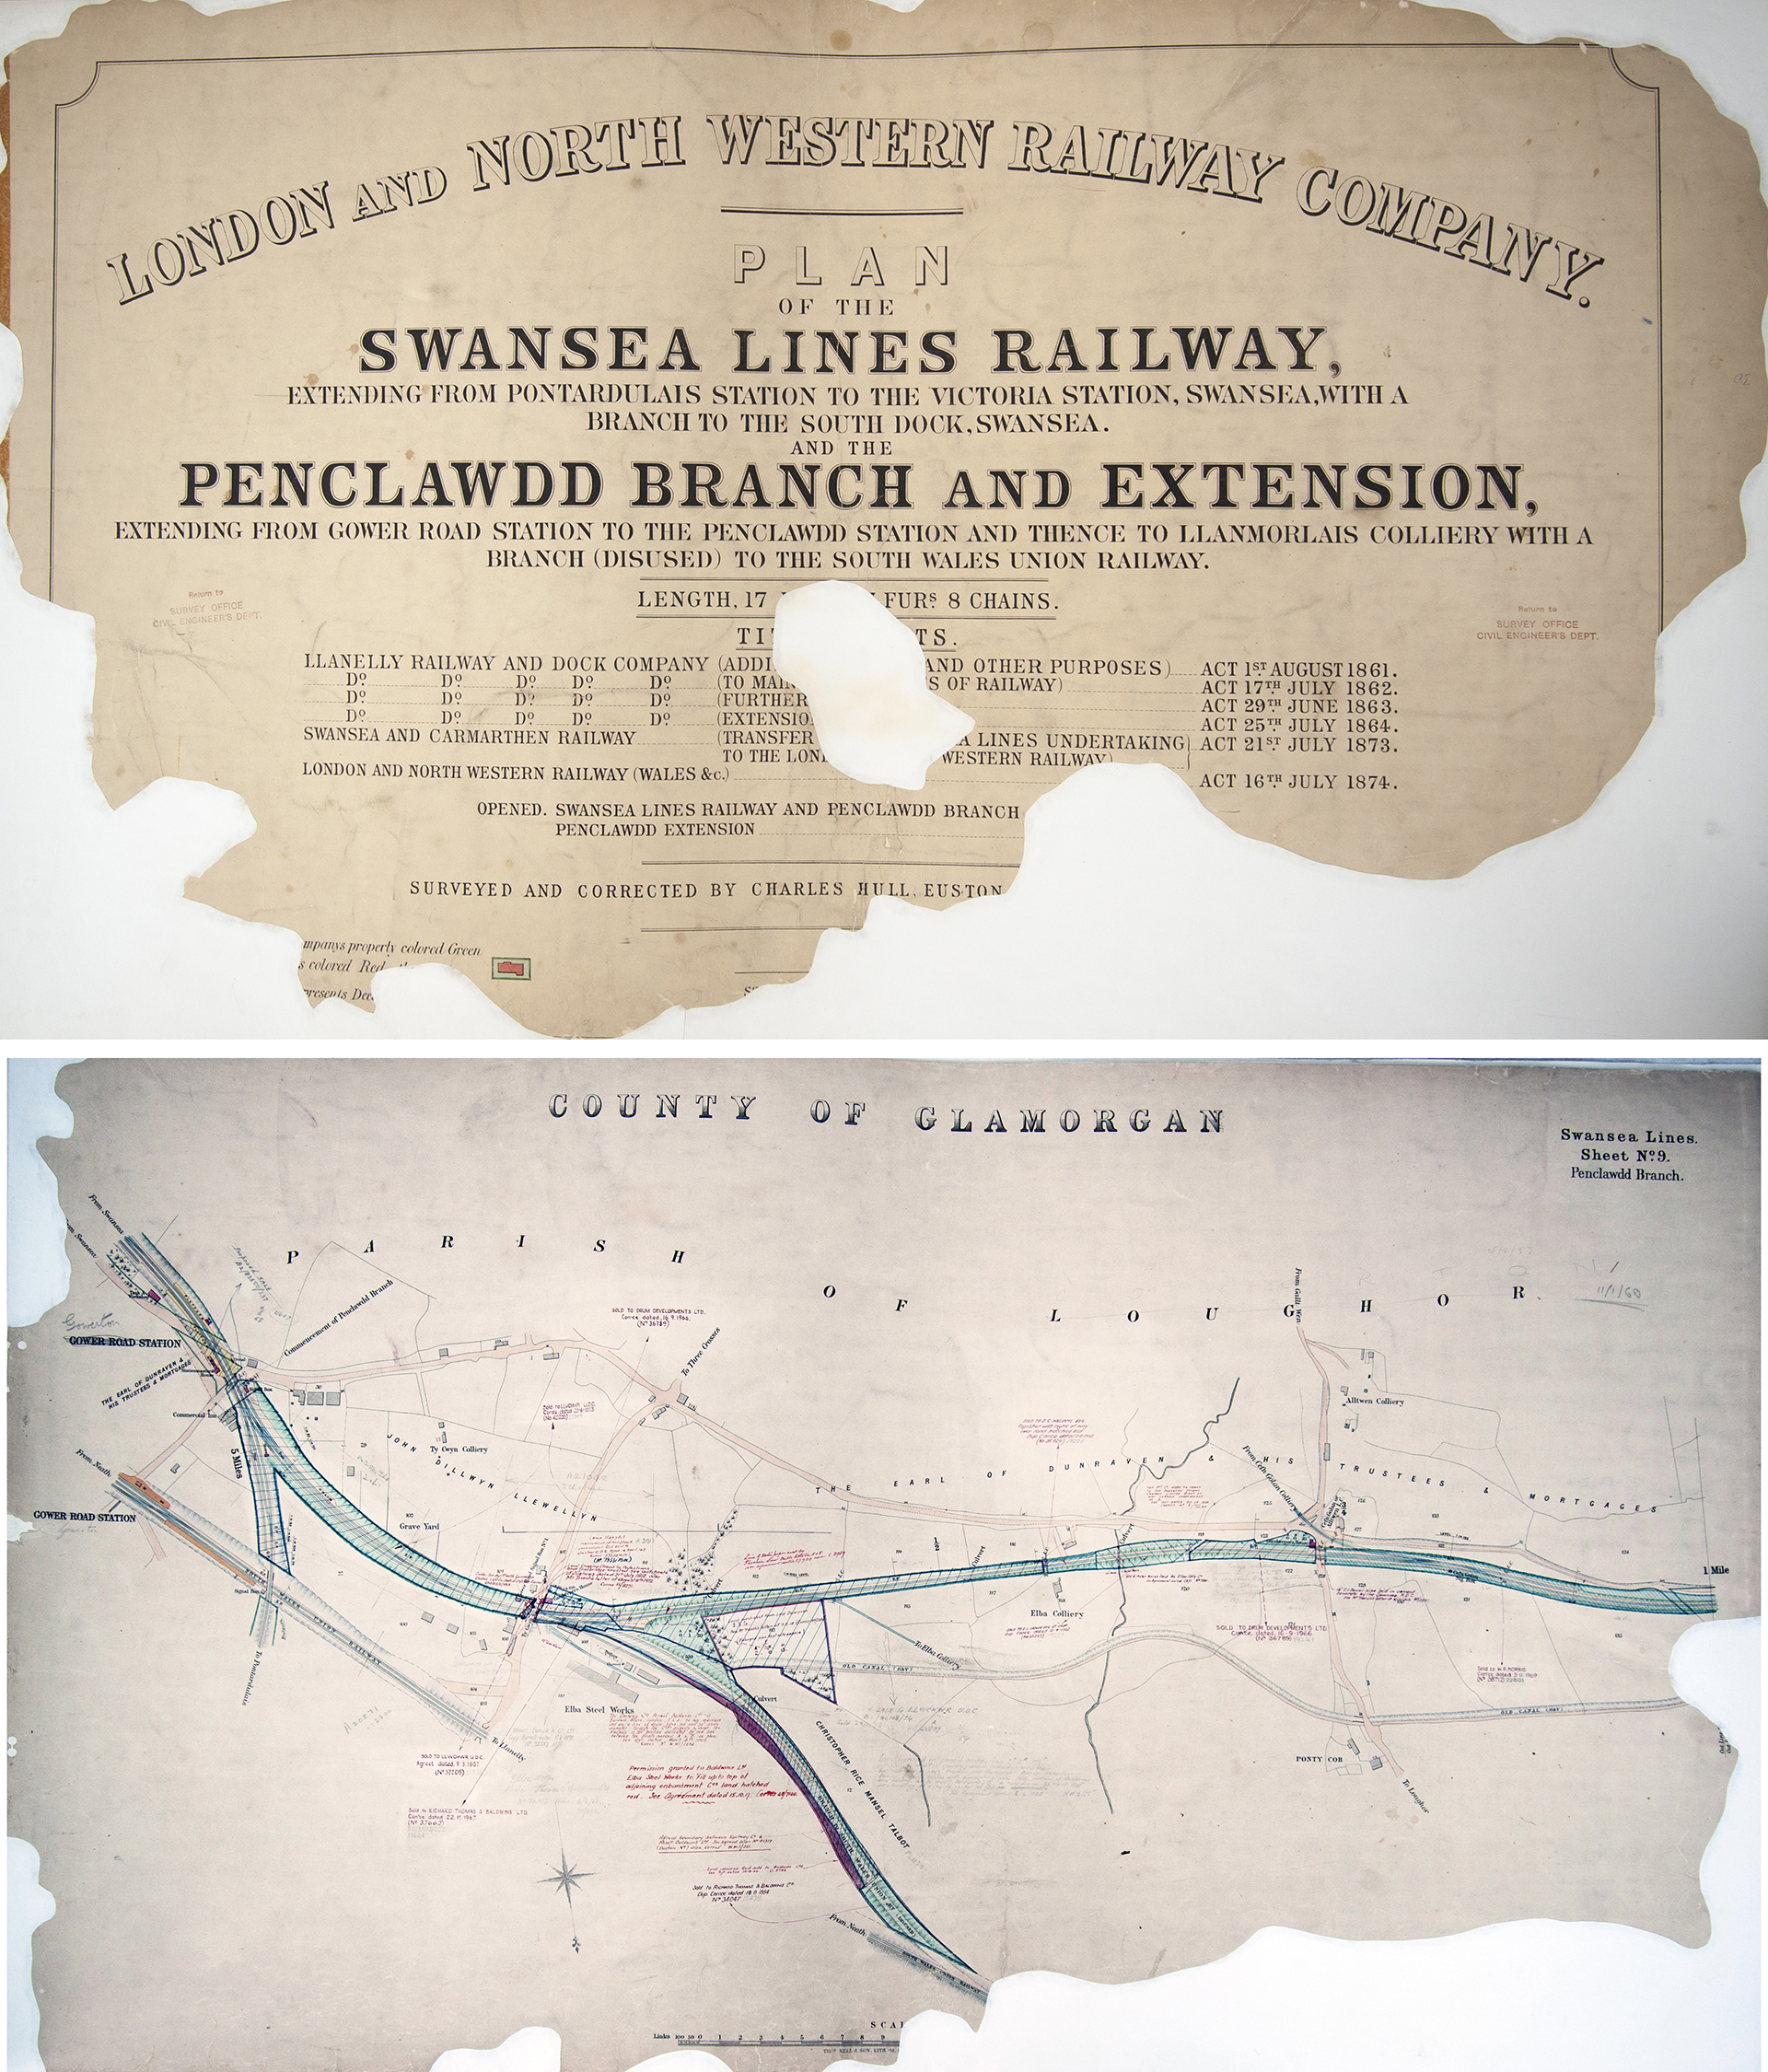 London & North Western Railway Official Hand